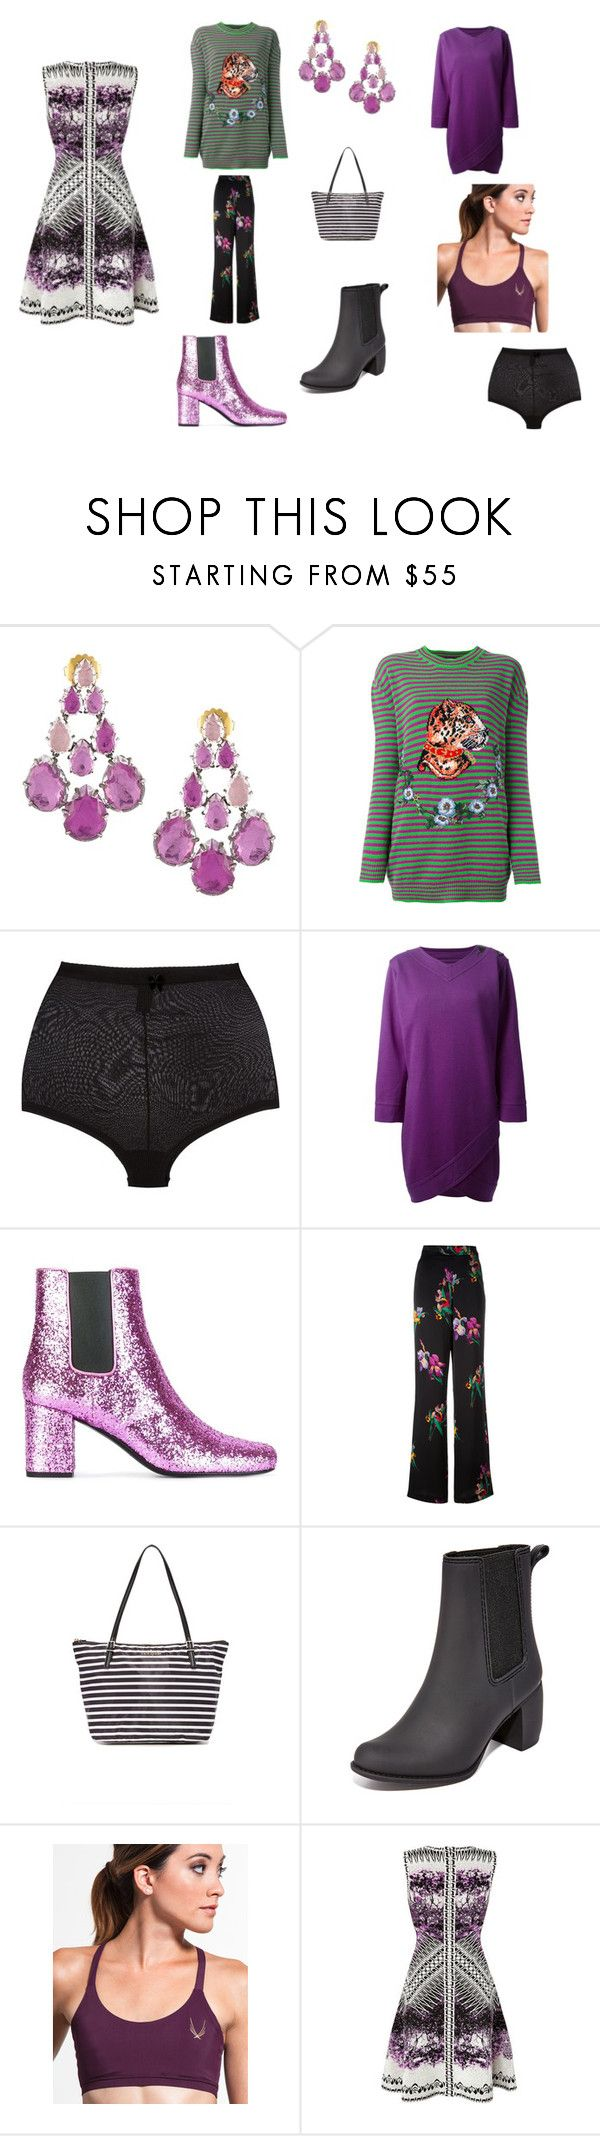 """one day sale"" by emmamegan-5678 ❤ liked on Polyvore featuring Gucci, Dsquared2, Yves Saint Laurent, Etro, Kate Spade, Jeffrey Campbell, Lucas Hugh, Hervé Léger and vintage"